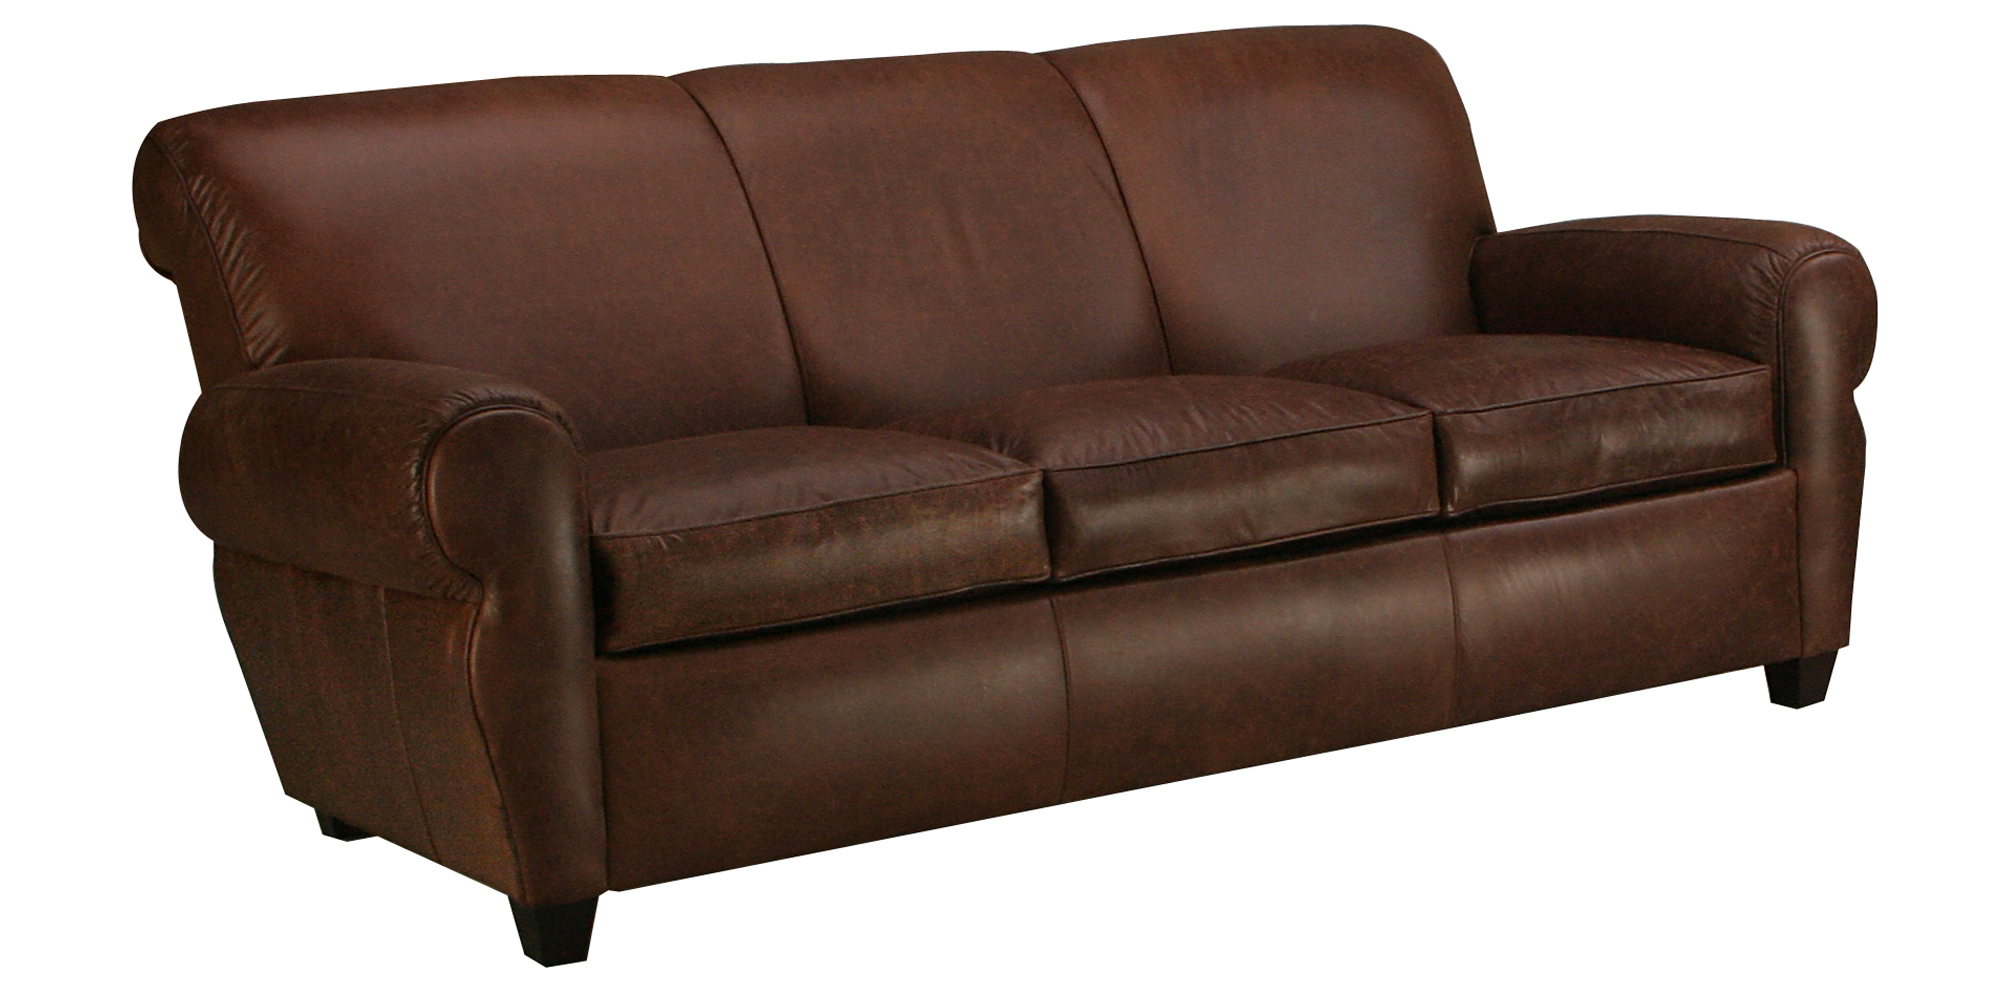 Vintage Club Leather Sofa Collection Like Manhattan Club